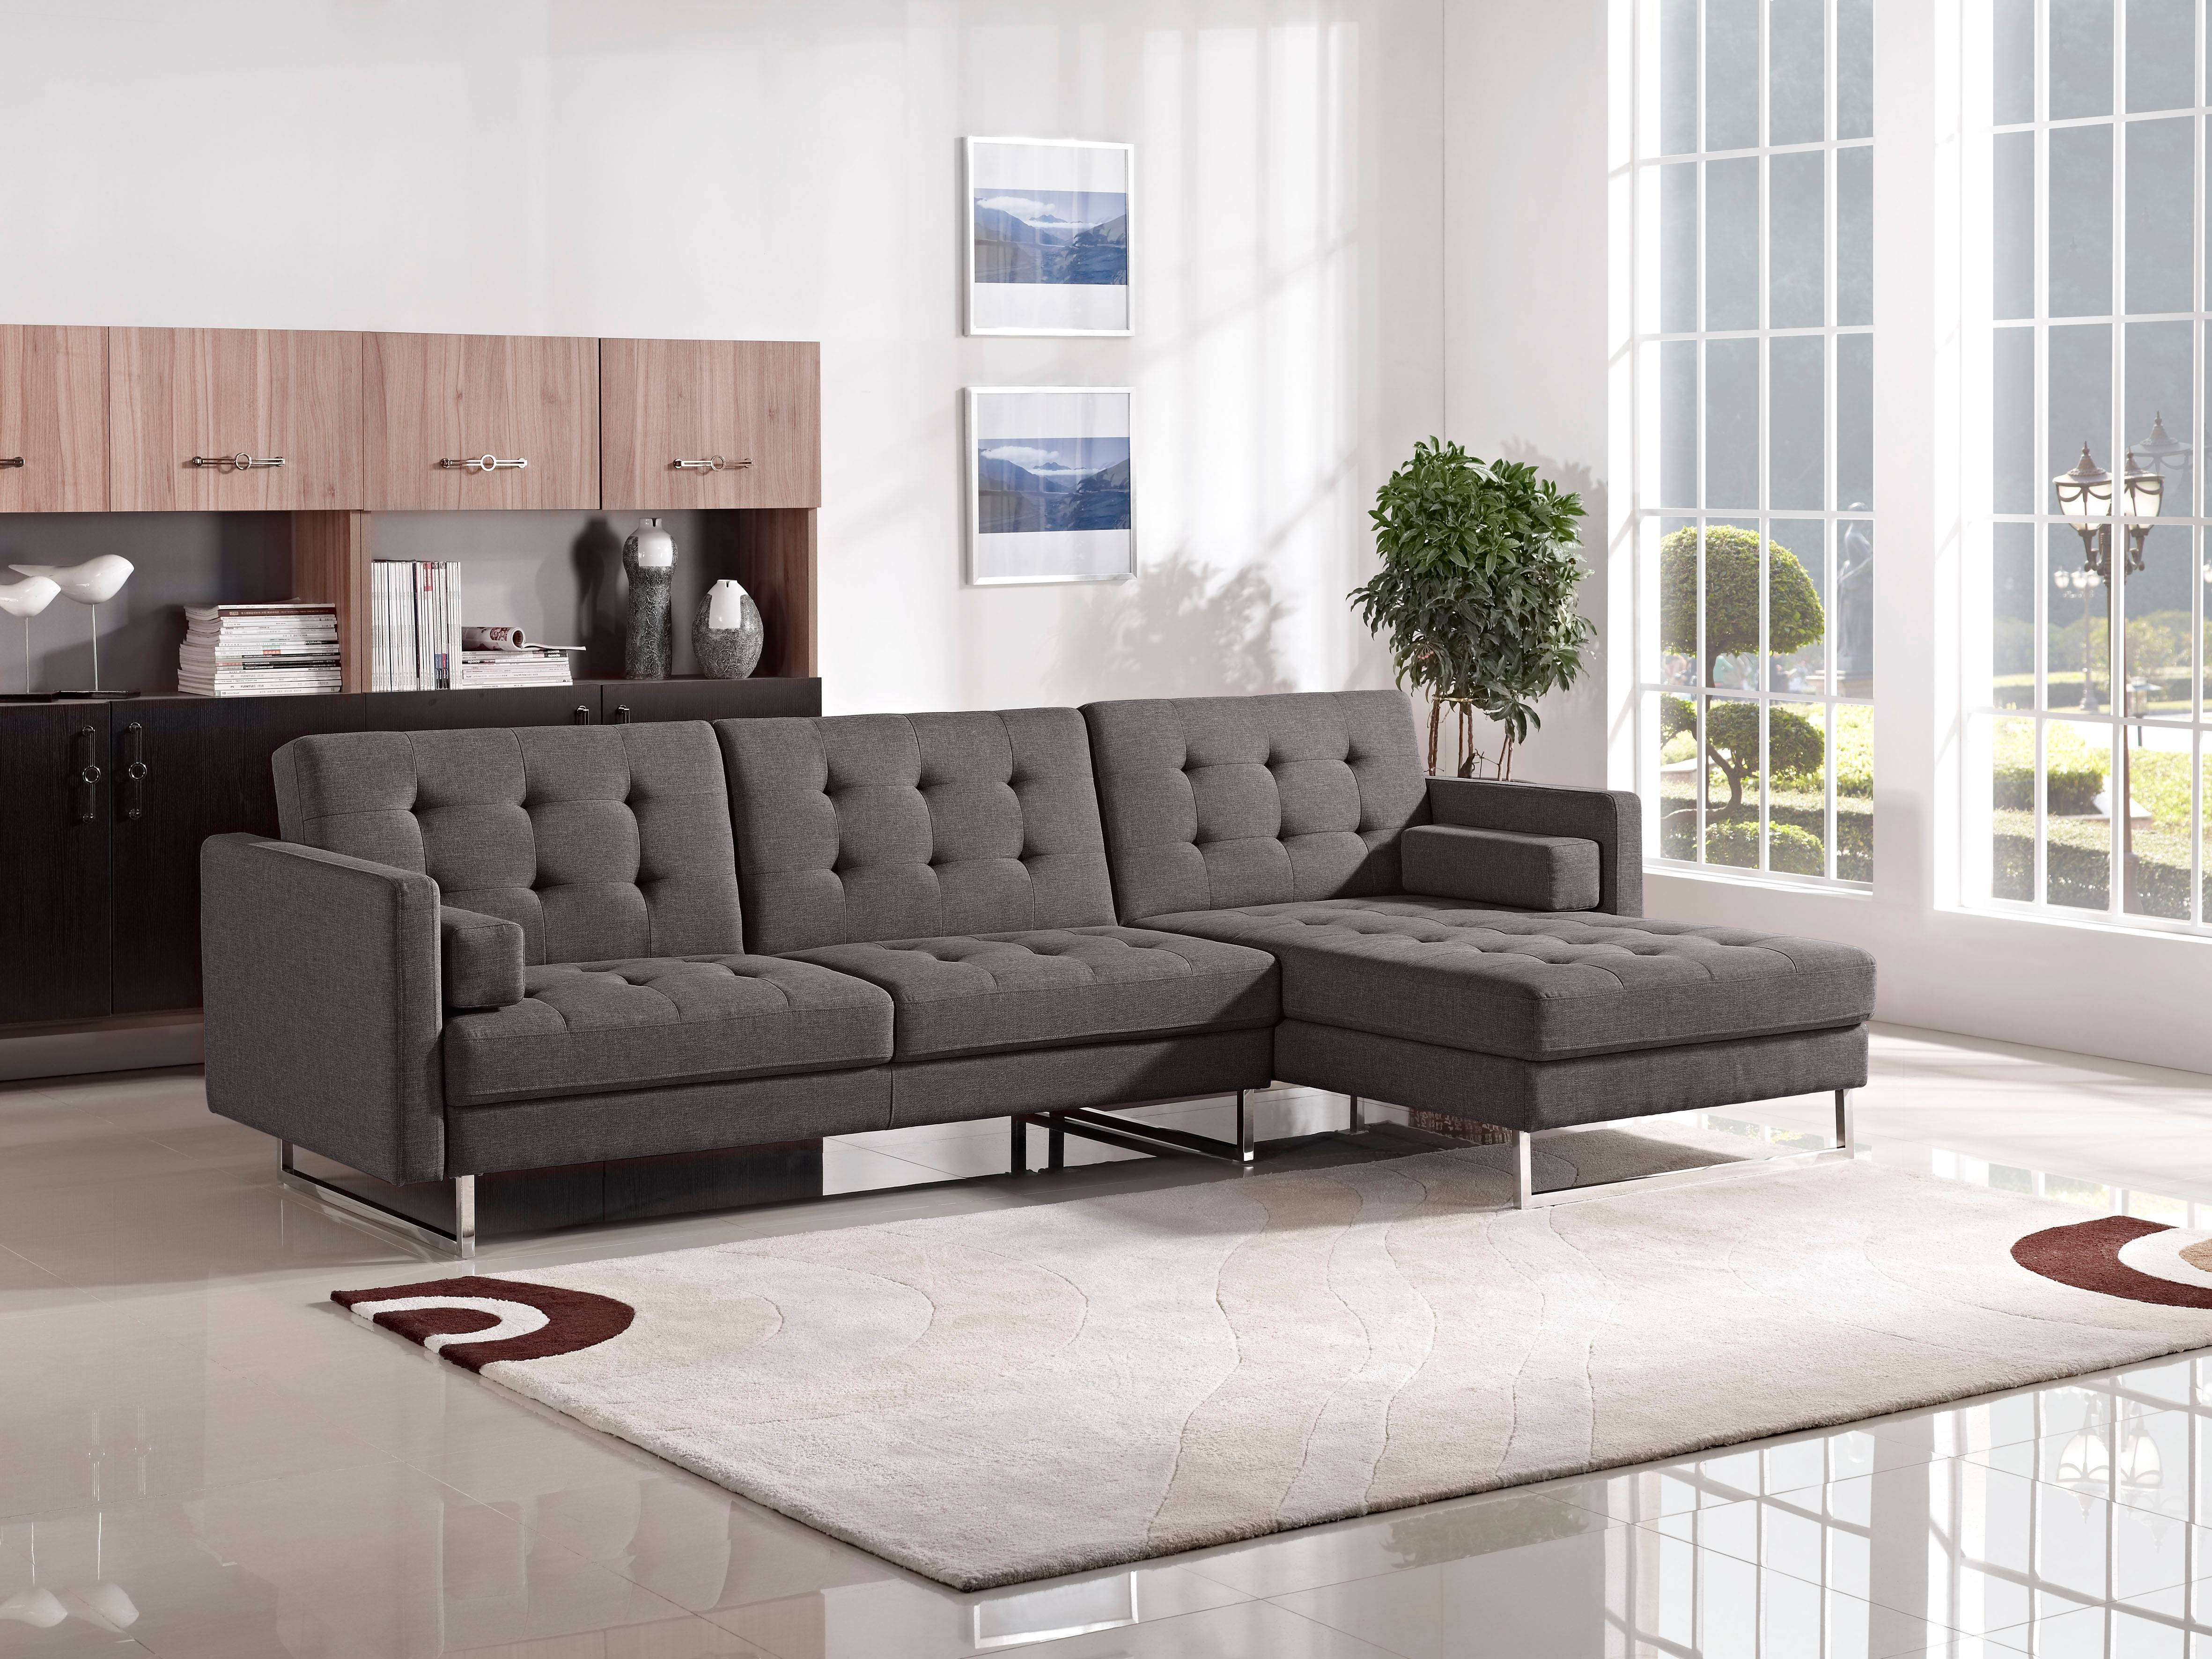 Sofas Center : Tufted Sectional Sofa With Chaise Cleanupflorida regarding Tufted Sectional Sofa Chaise (Image 19 of 25)